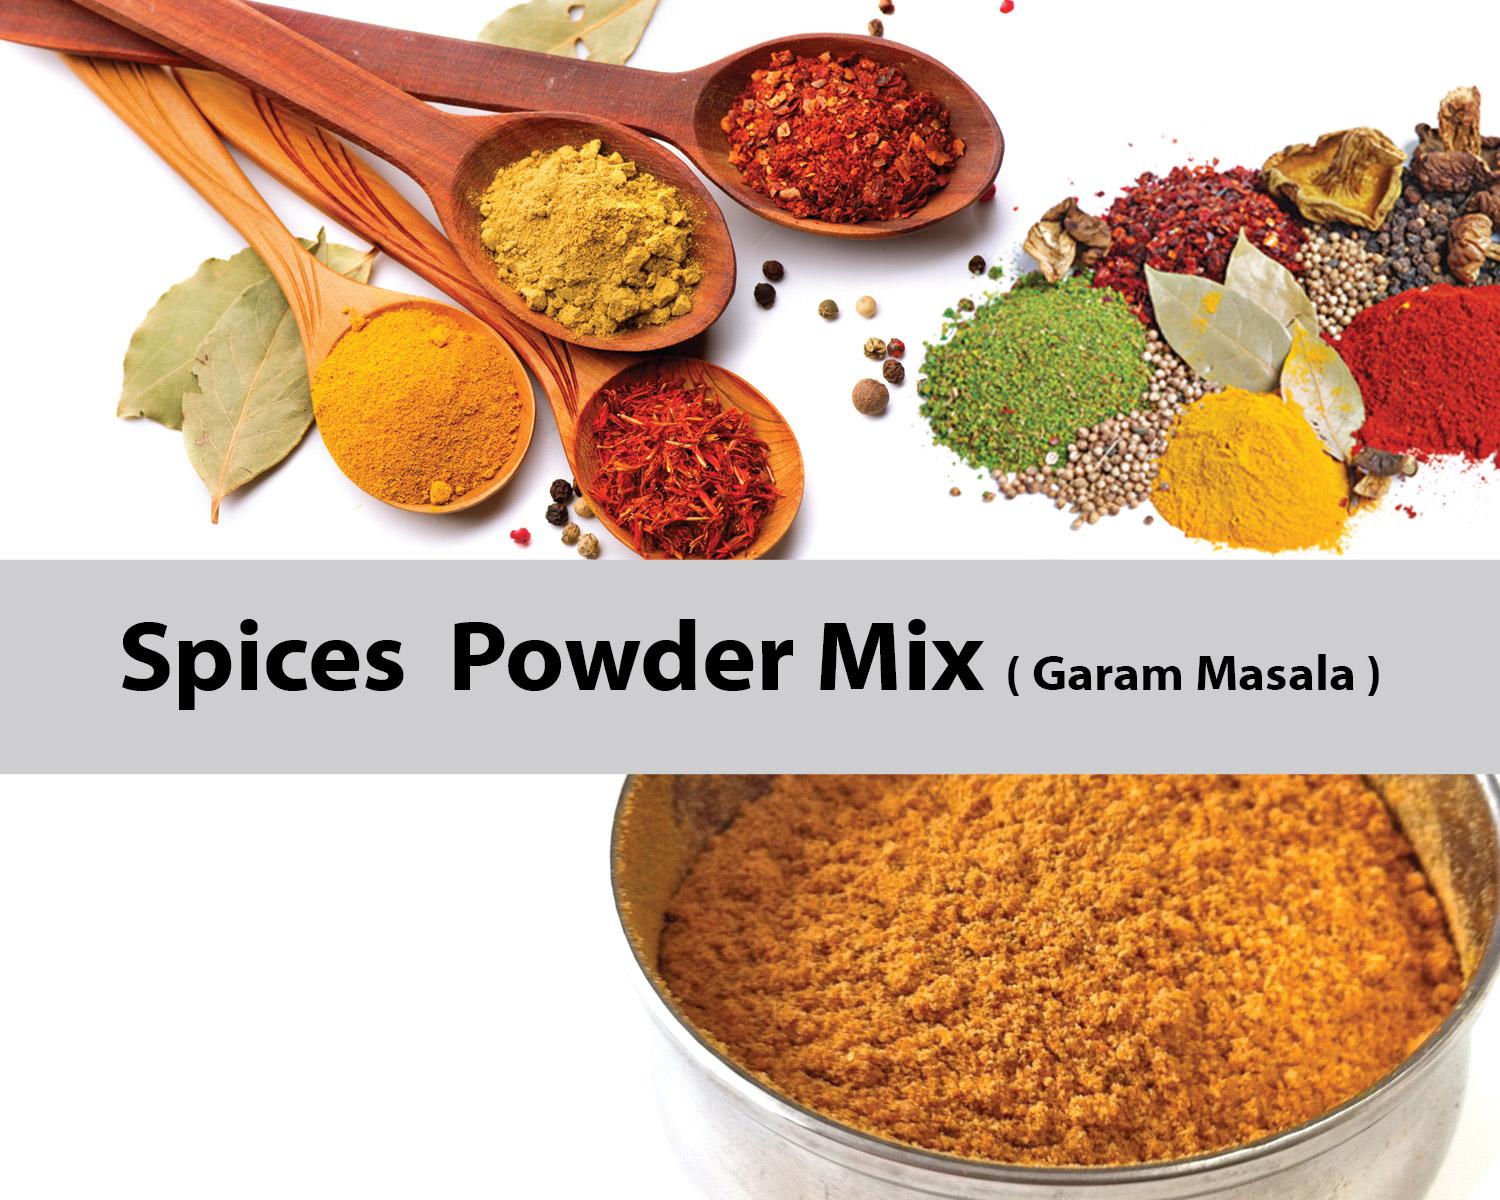 Mixer for Spices Powder Mix